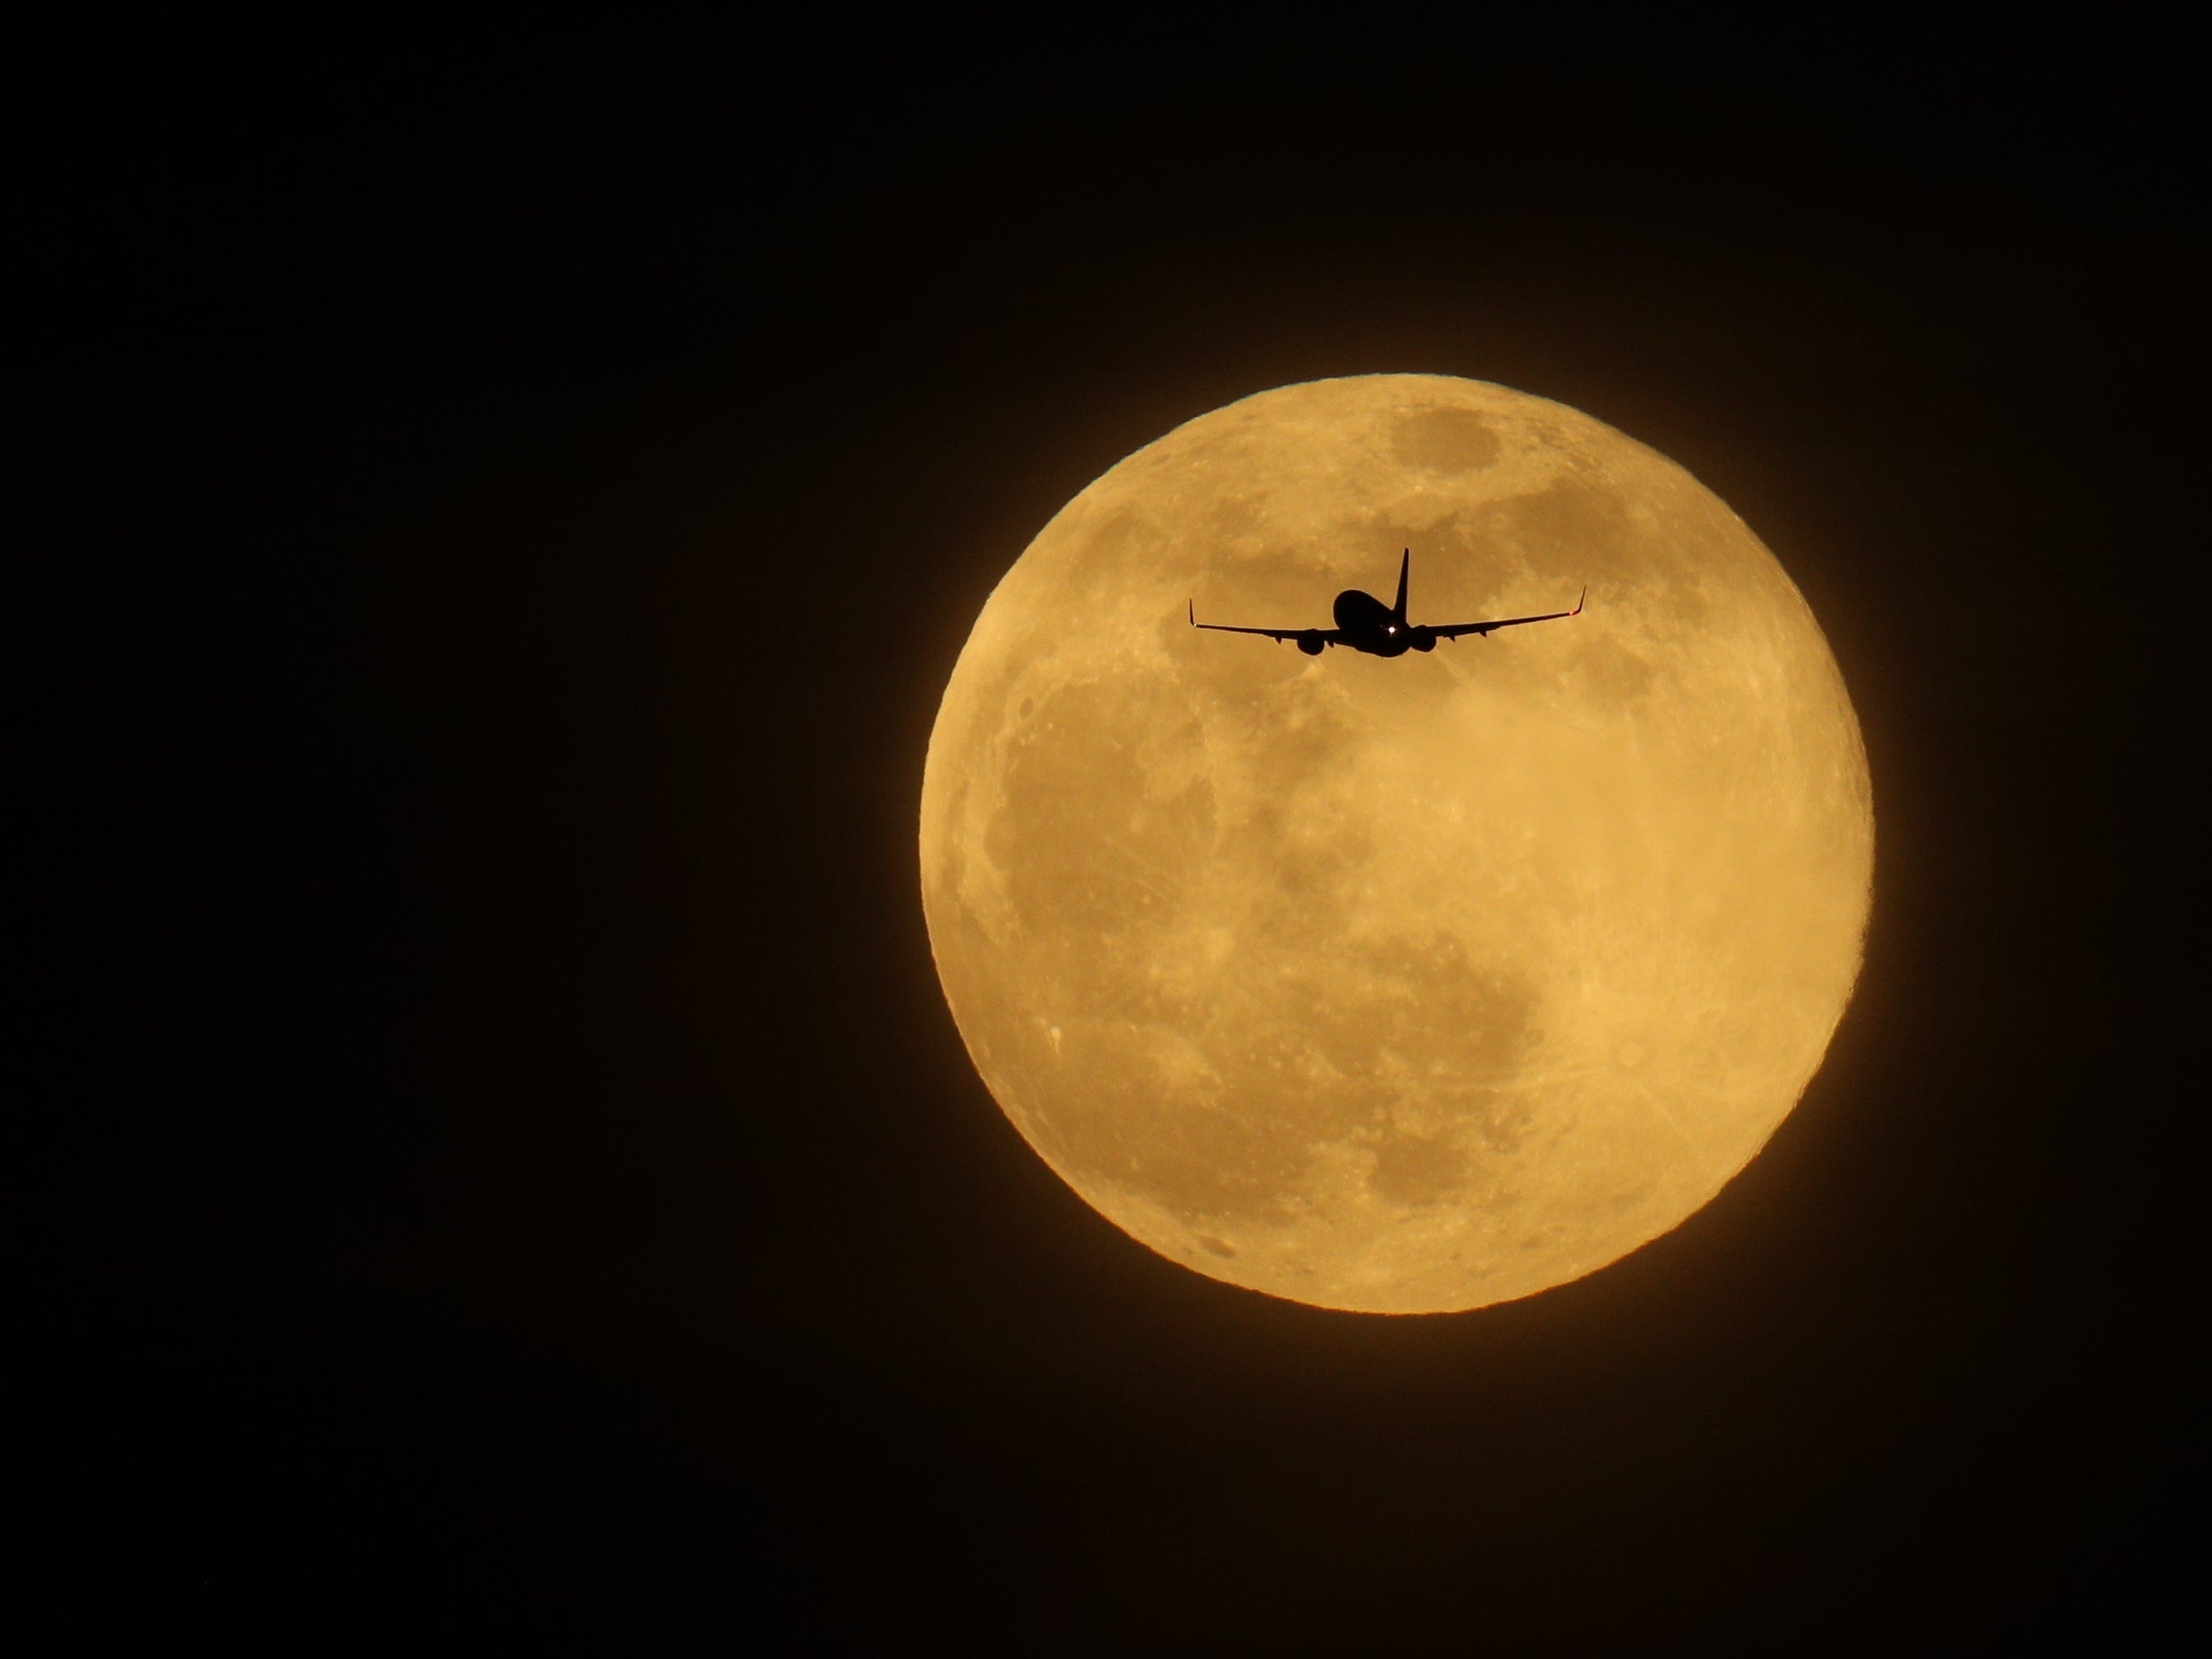 A plane flies in front of a supermoon on Feb. 19, 2019, in London.